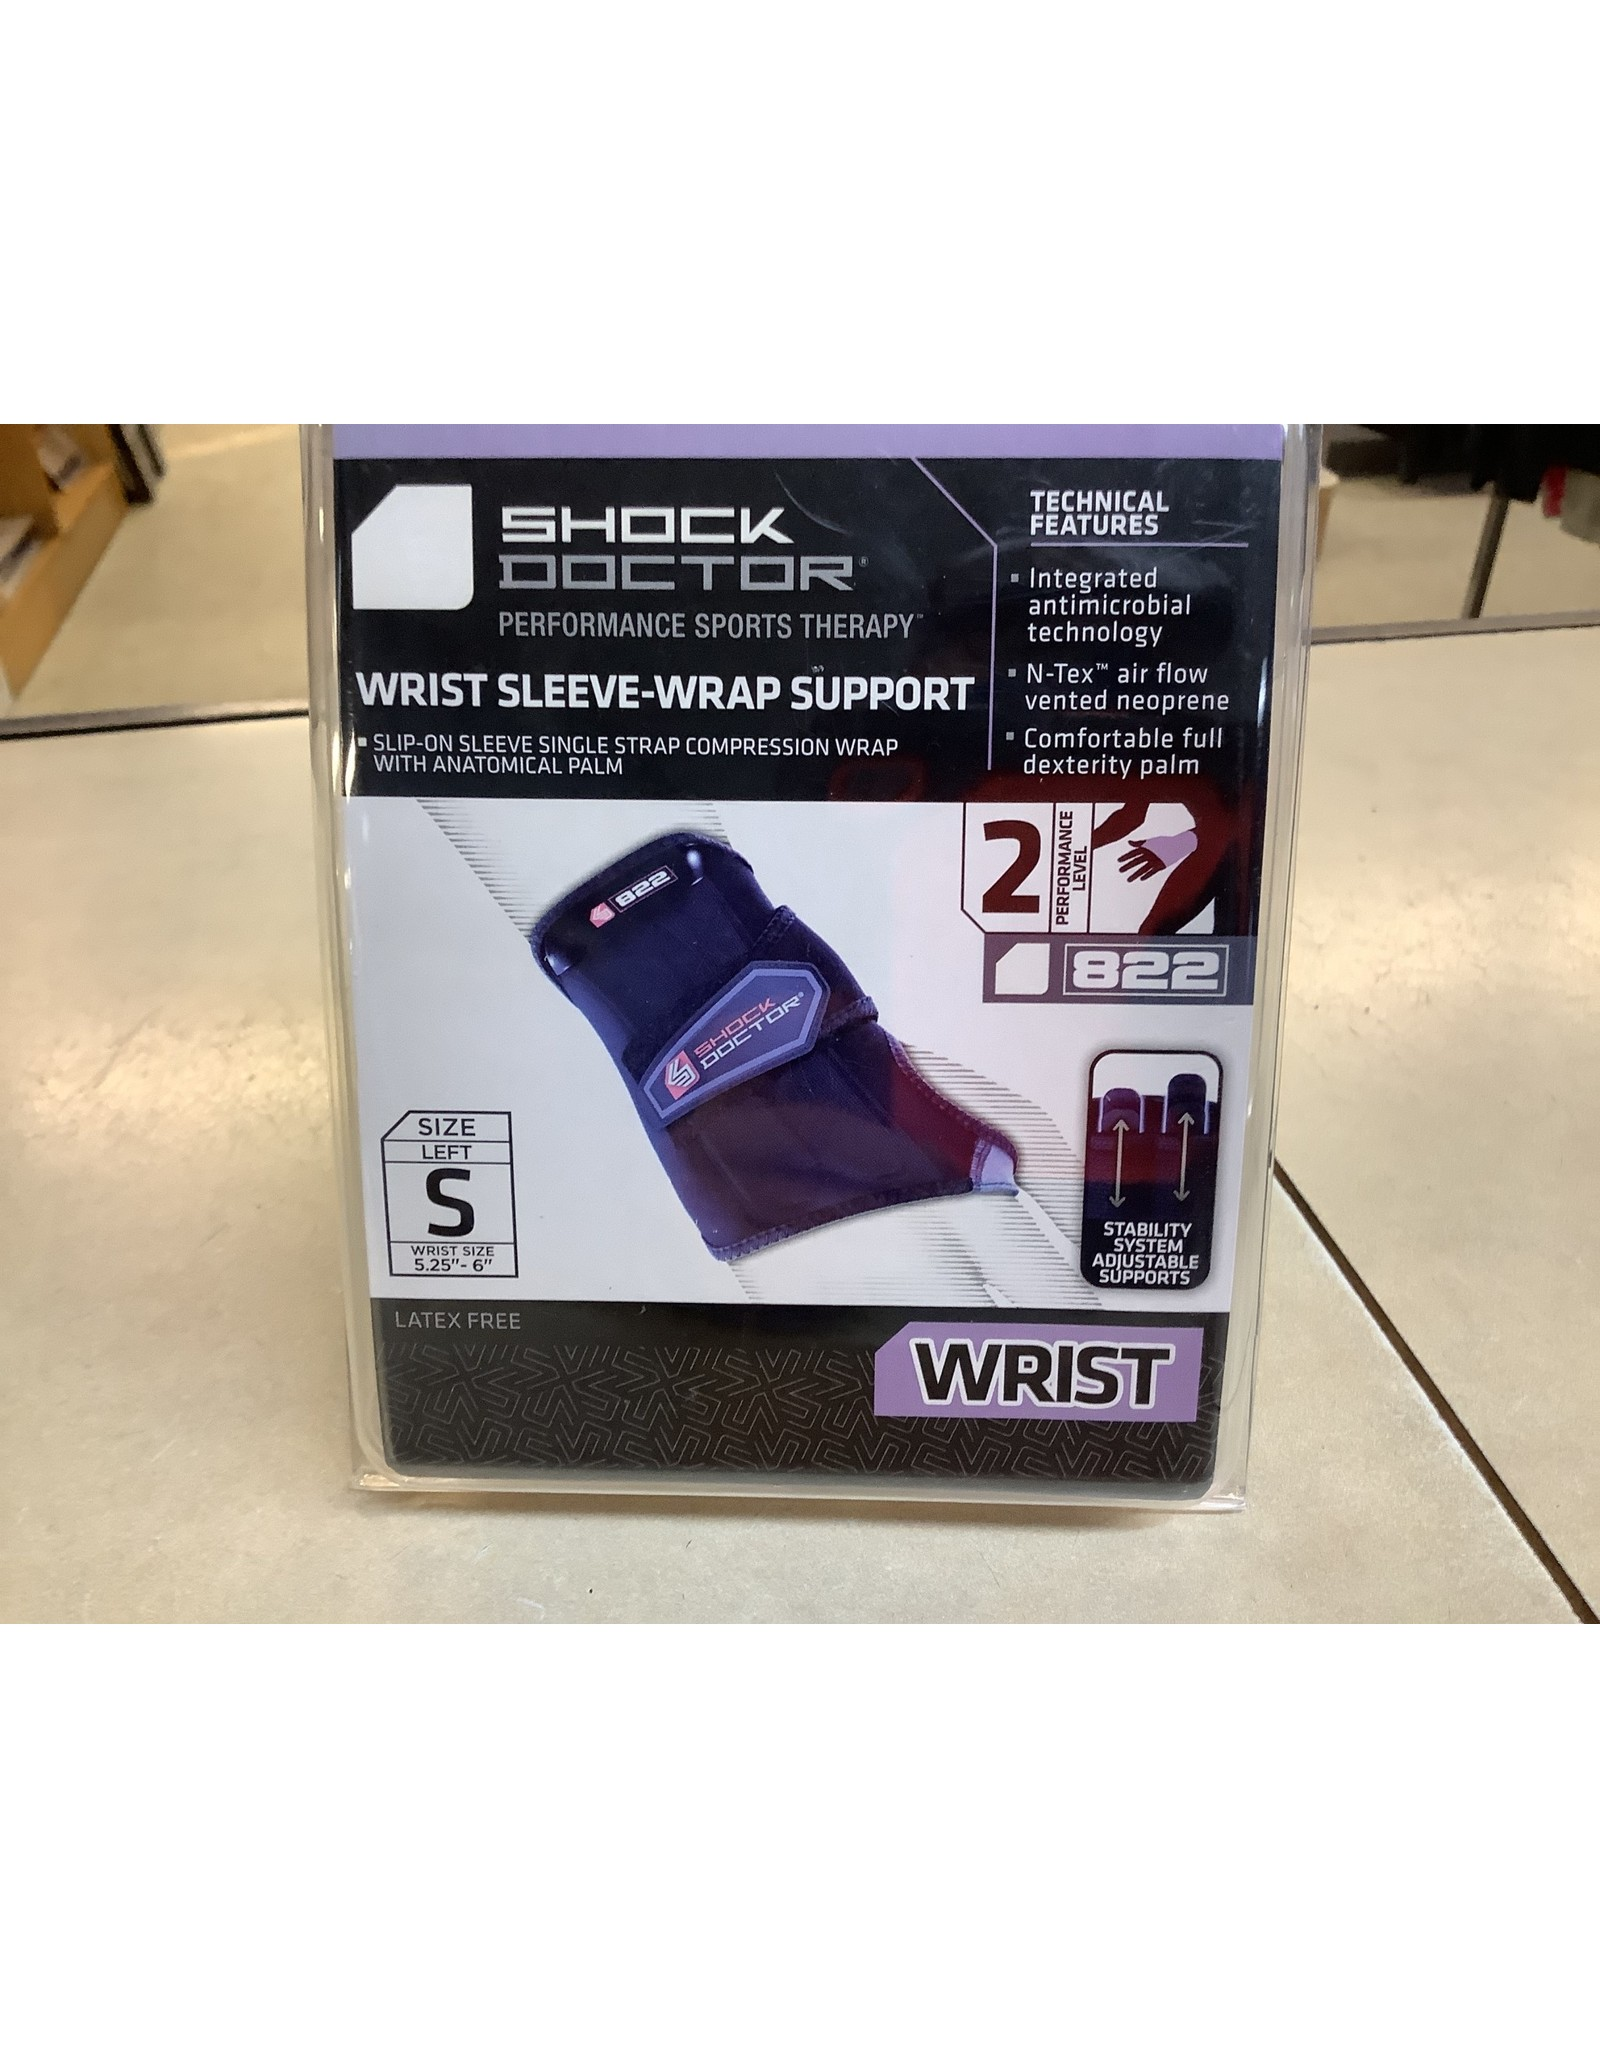 Shock Doctor 822 Wrist Sleeve-Wrap Support